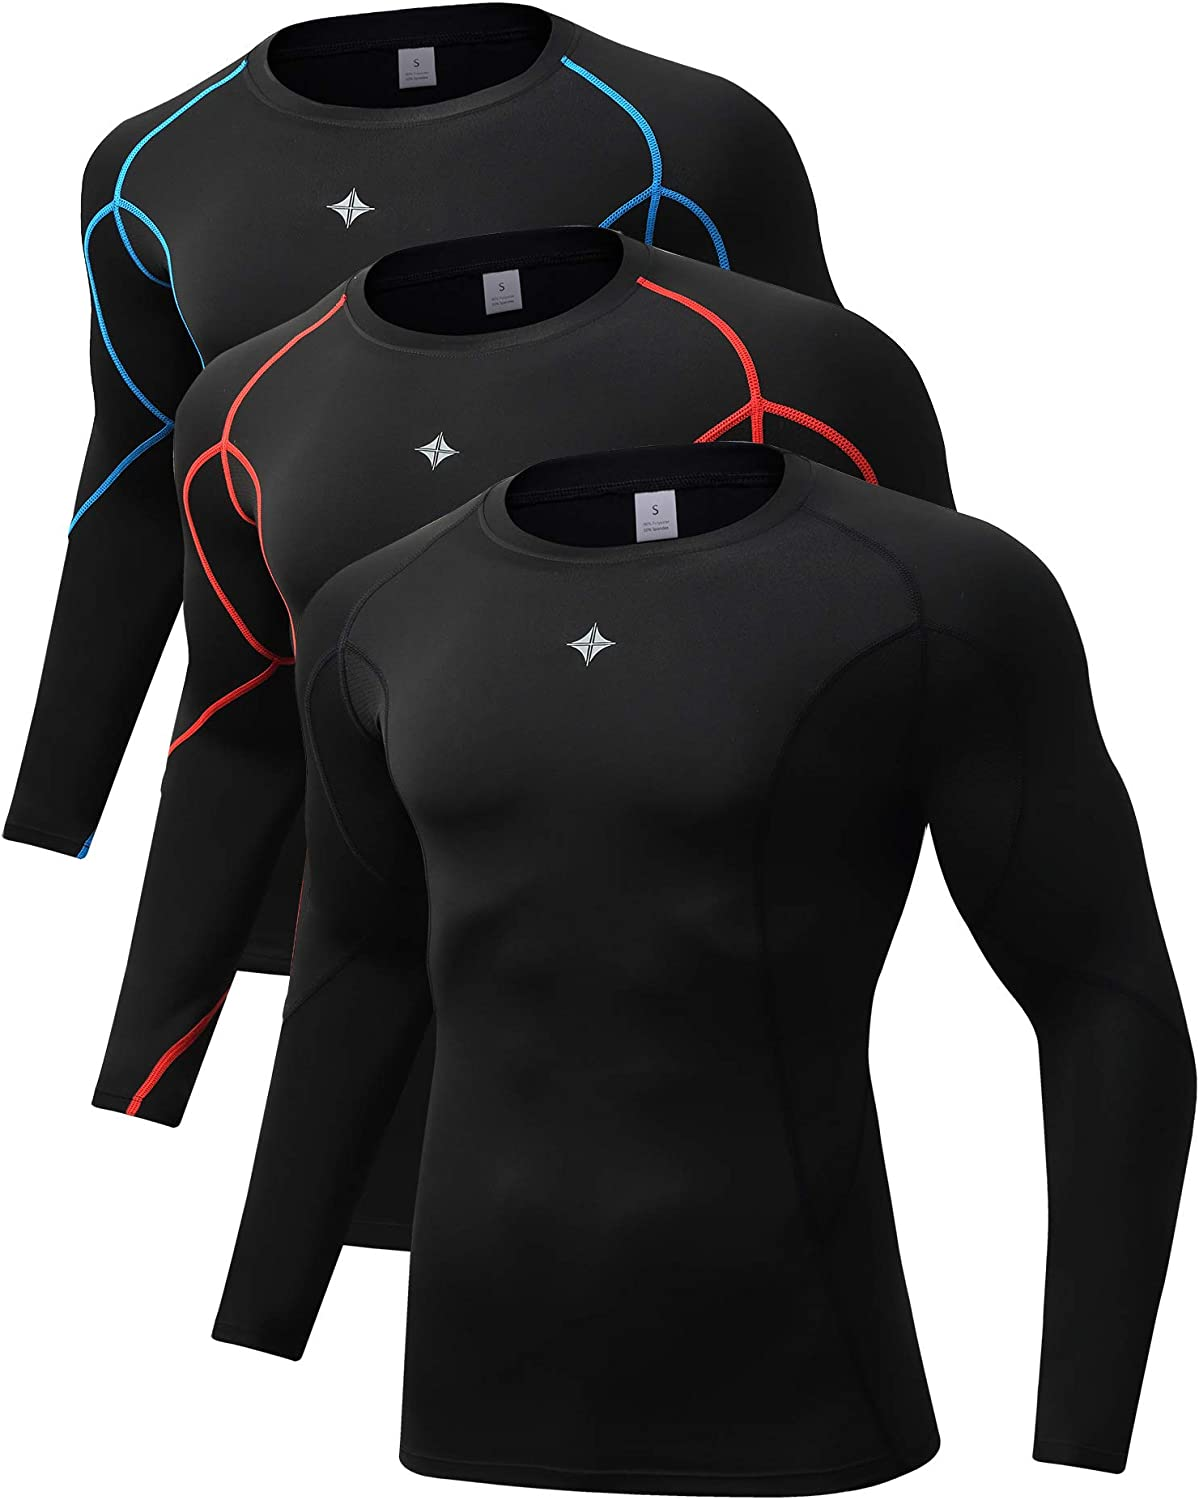 Milin Naco Cool Dry Compression Shirts for Men Long Sleeve Baselayer Tops ,Pack of 1, 2 or 3